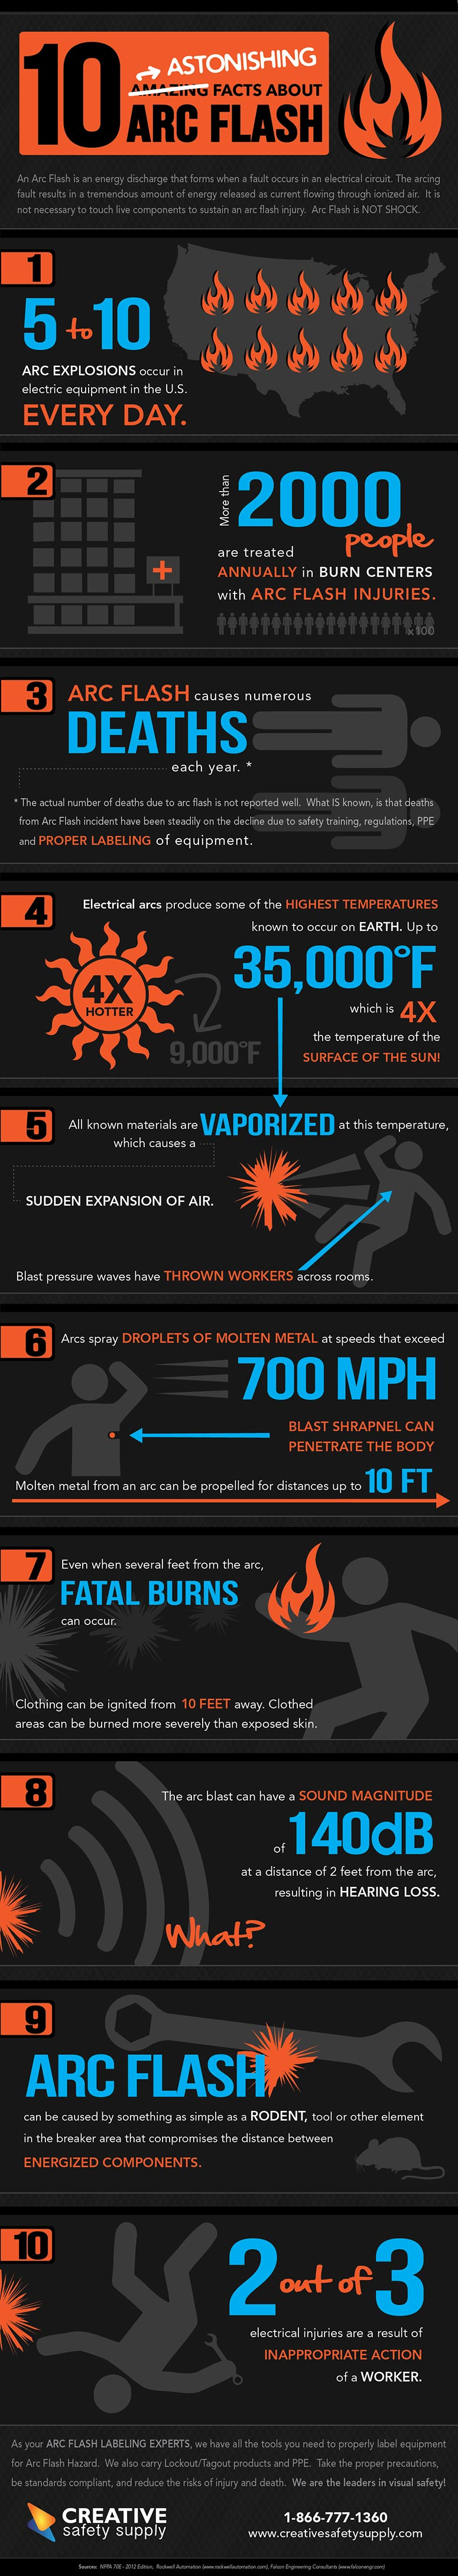 arc-flash-facts-infographic-plaza